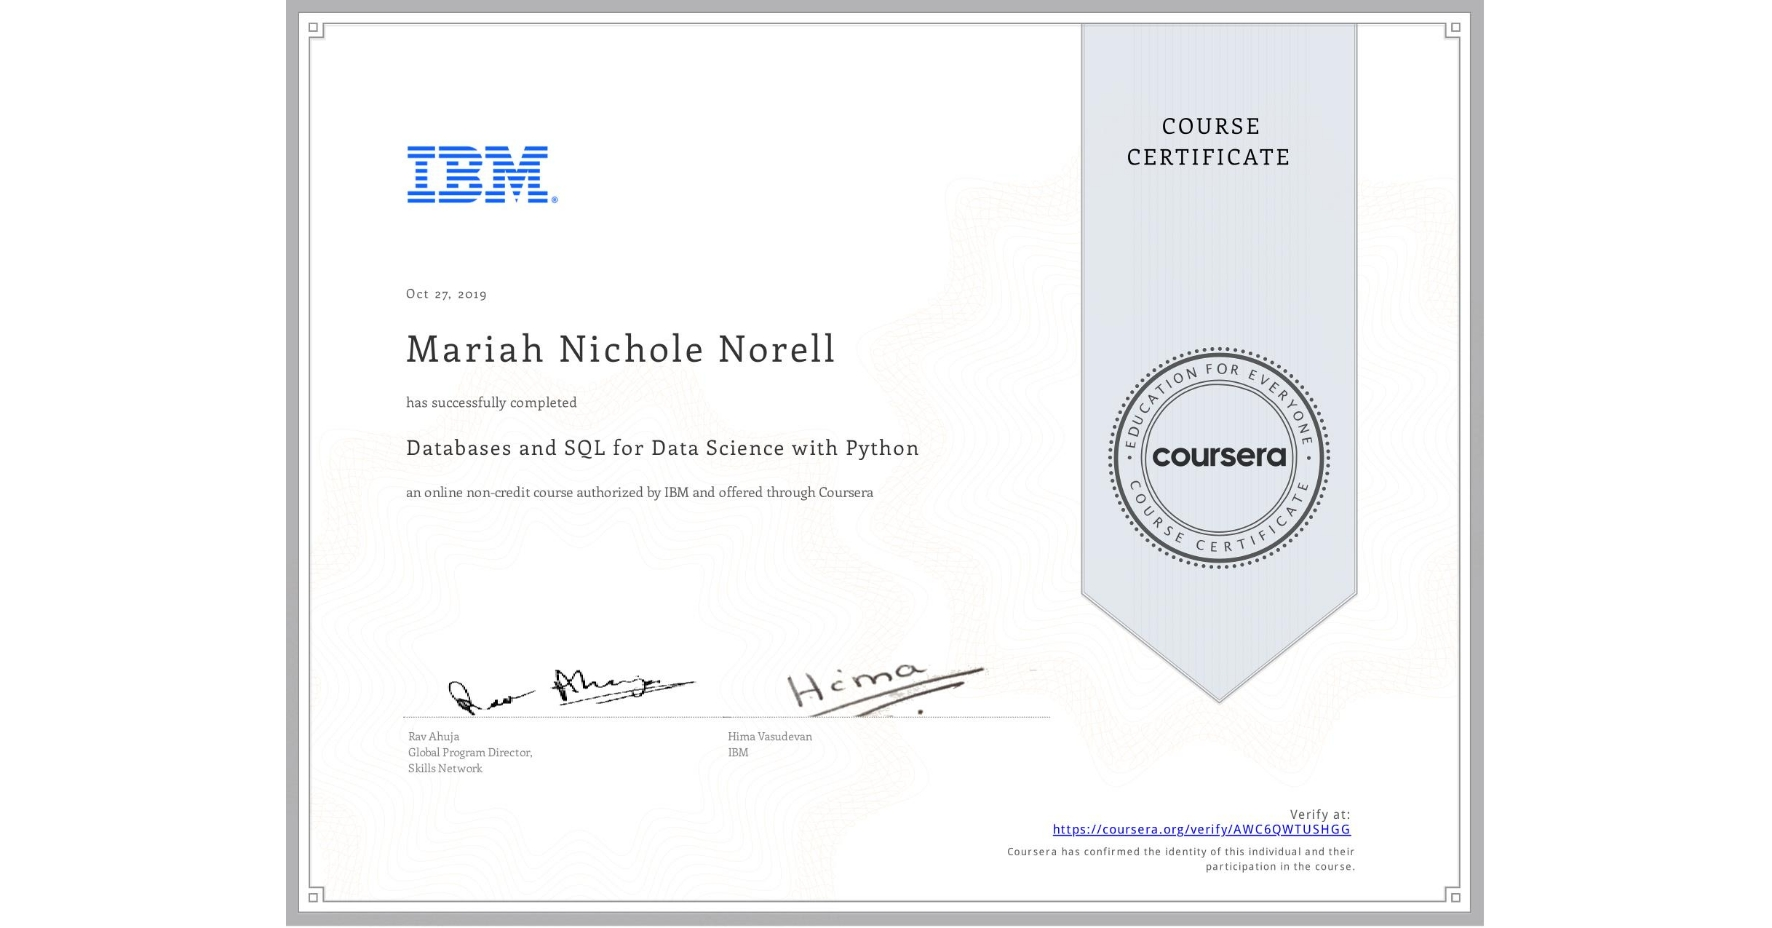 View certificate for Mariah Nichole Norell, Databases and SQL for Data Science with Python, an online non-credit course authorized by IBM and offered through Coursera